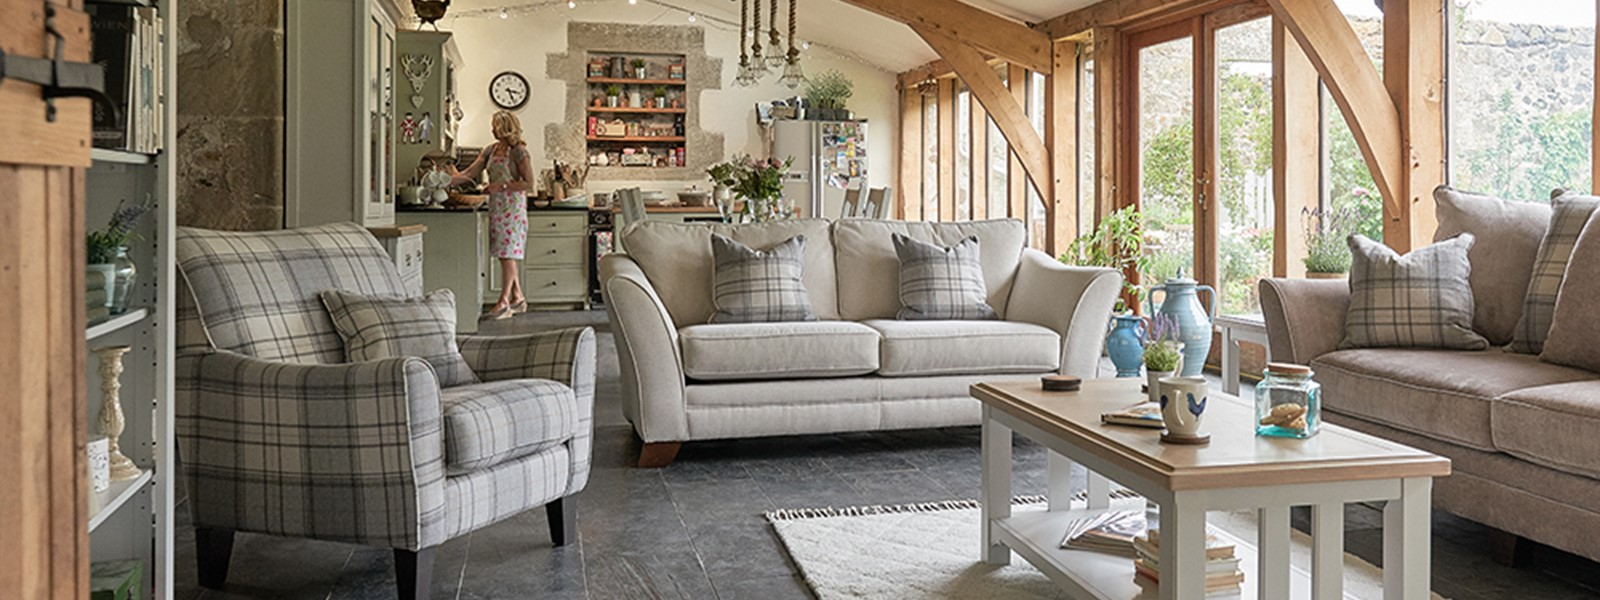 Sofas Dining Furniture Bedroom Home Accessories Sterling